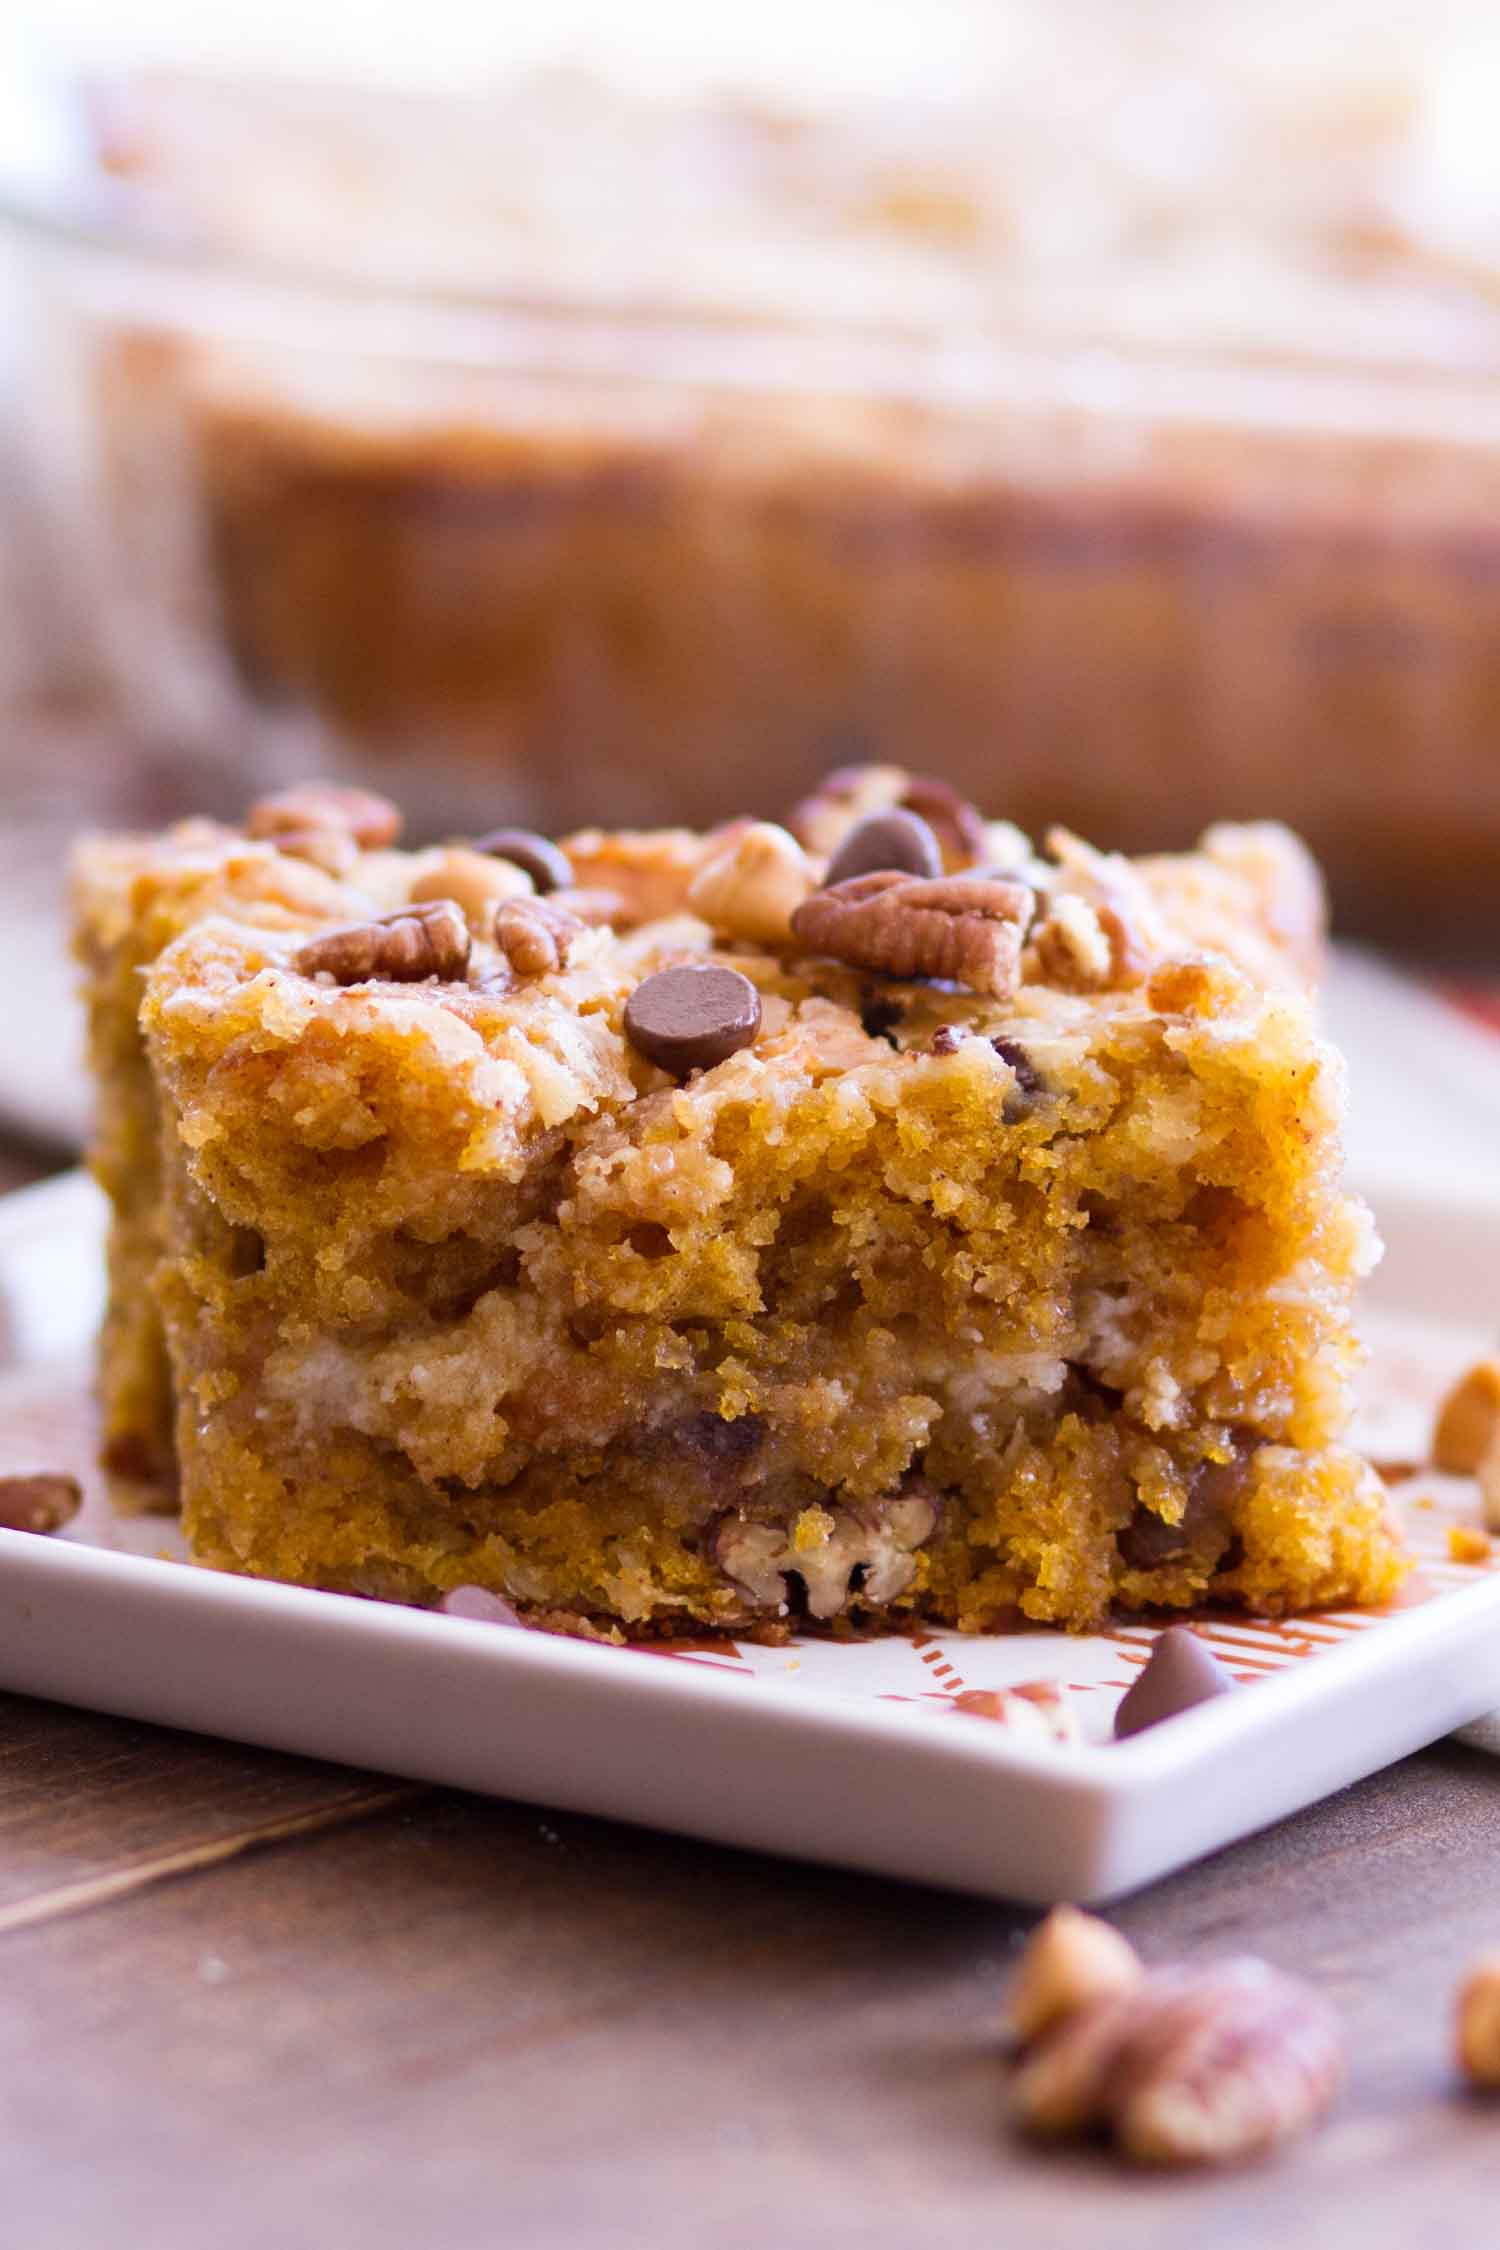 Pumpkin Cake Recipe topped with pecans, chocolate chips and butterscotch chips.